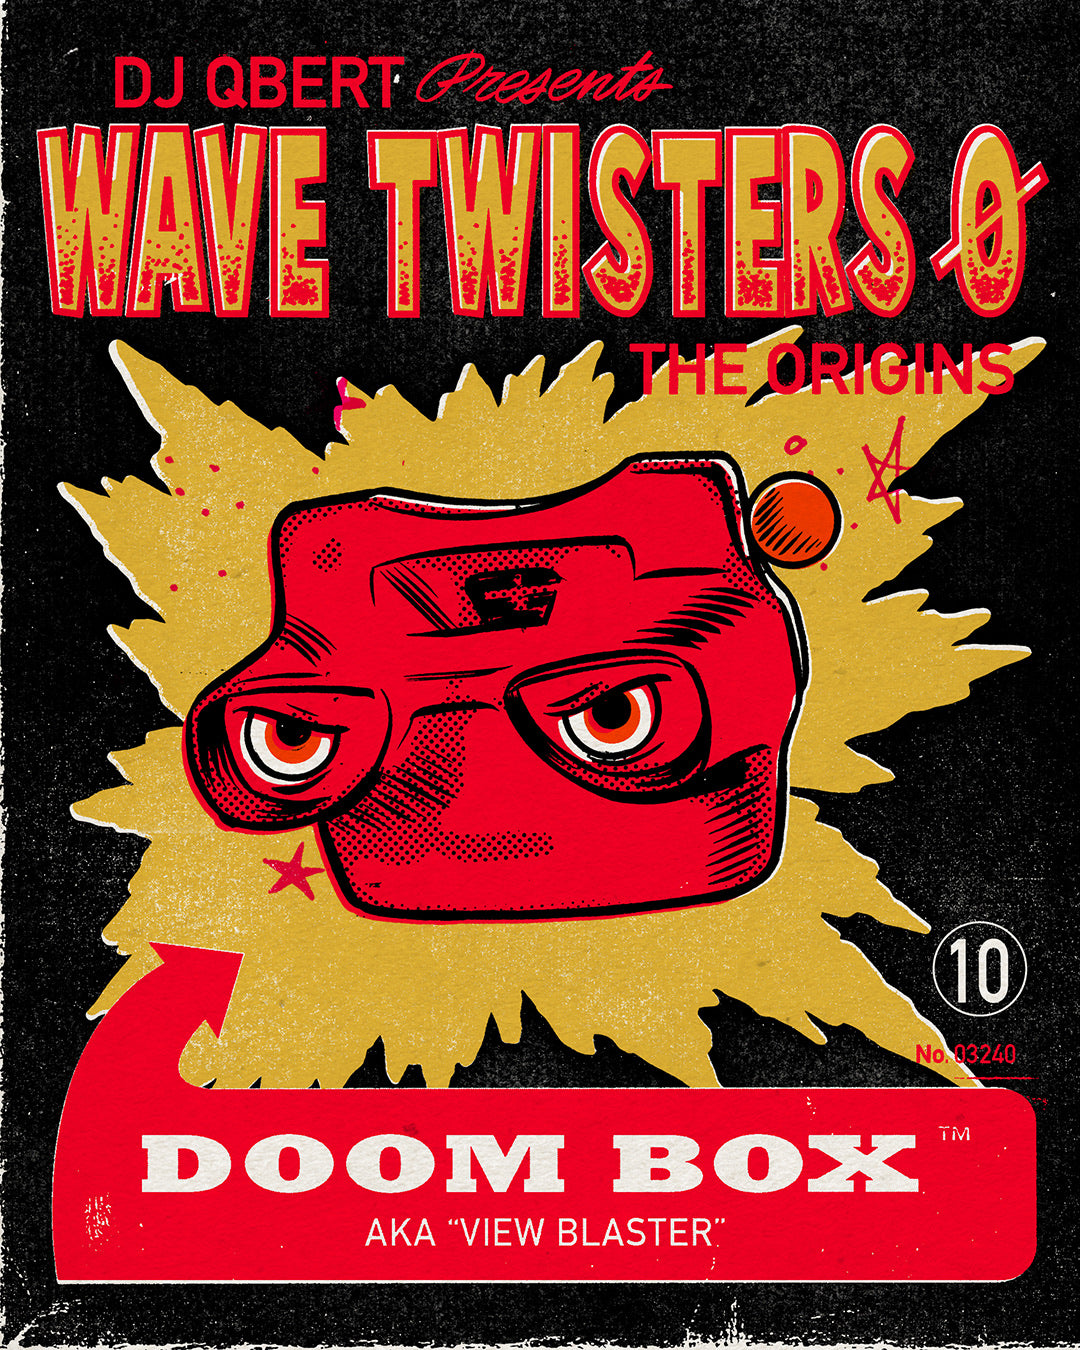 "DOOM BOX ""WAVE TWISTERS ZERO: THE ORIGINS"""